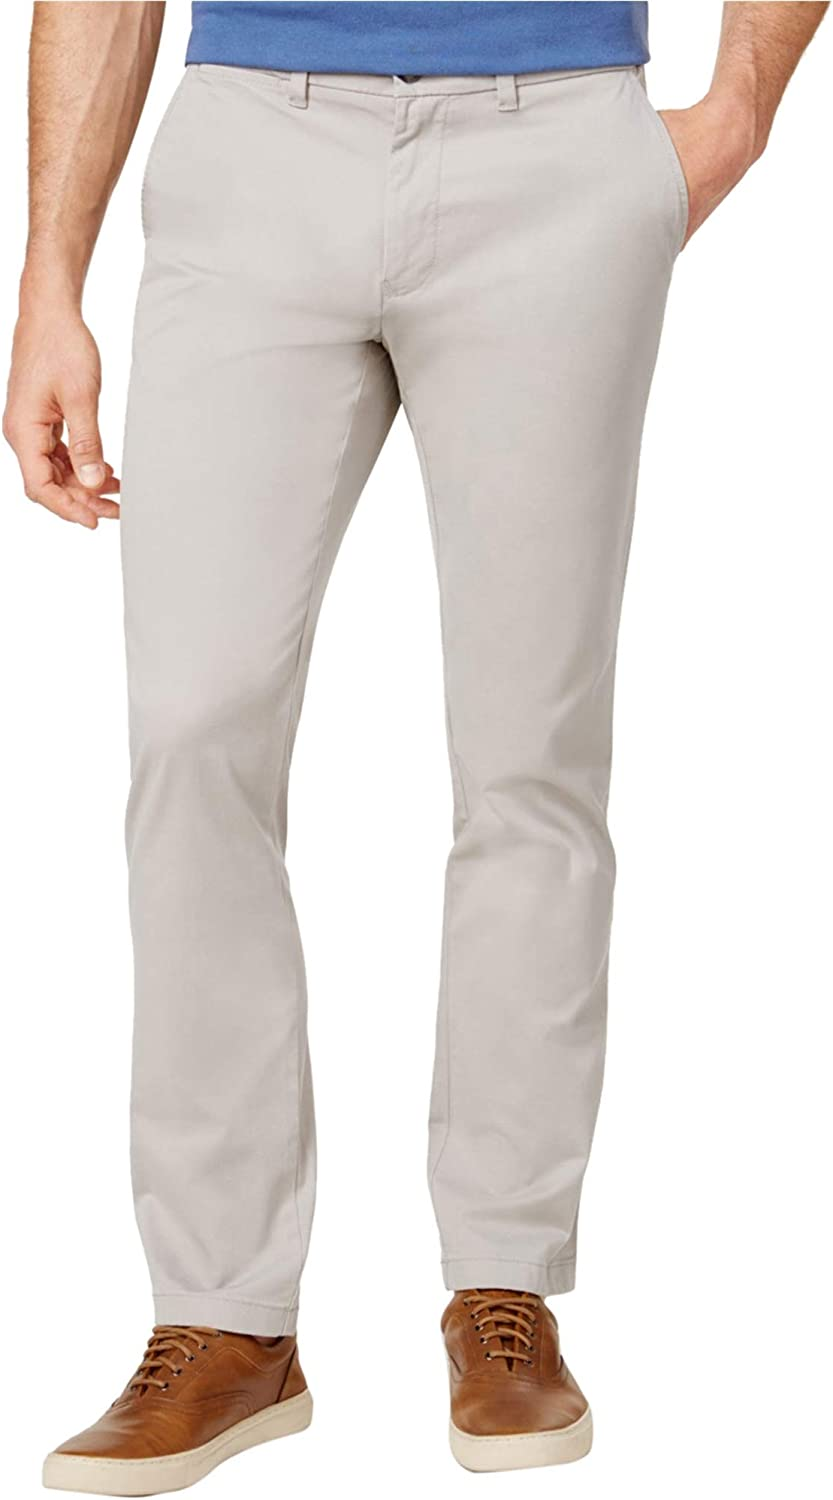 Tommy Hilfiger Mens Slim-Fit Casual Chino Pants